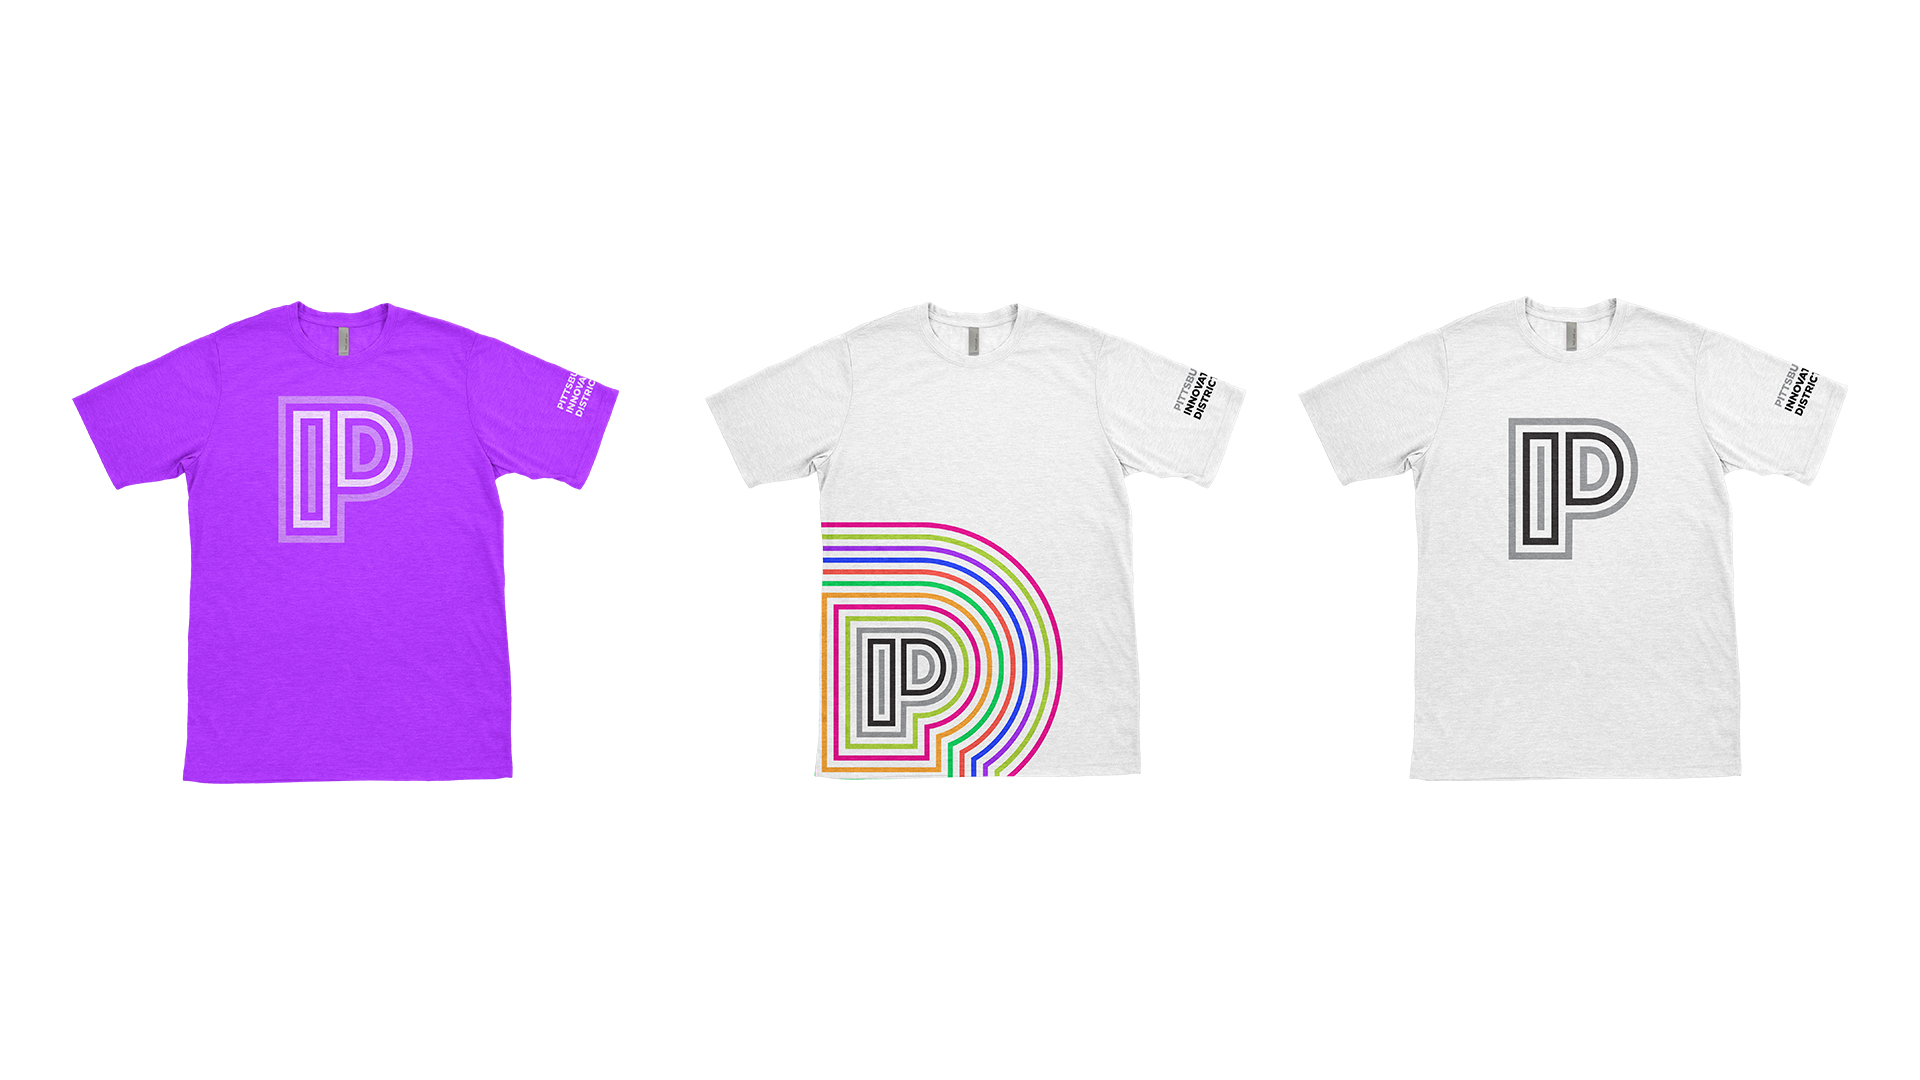 Pghid shirts